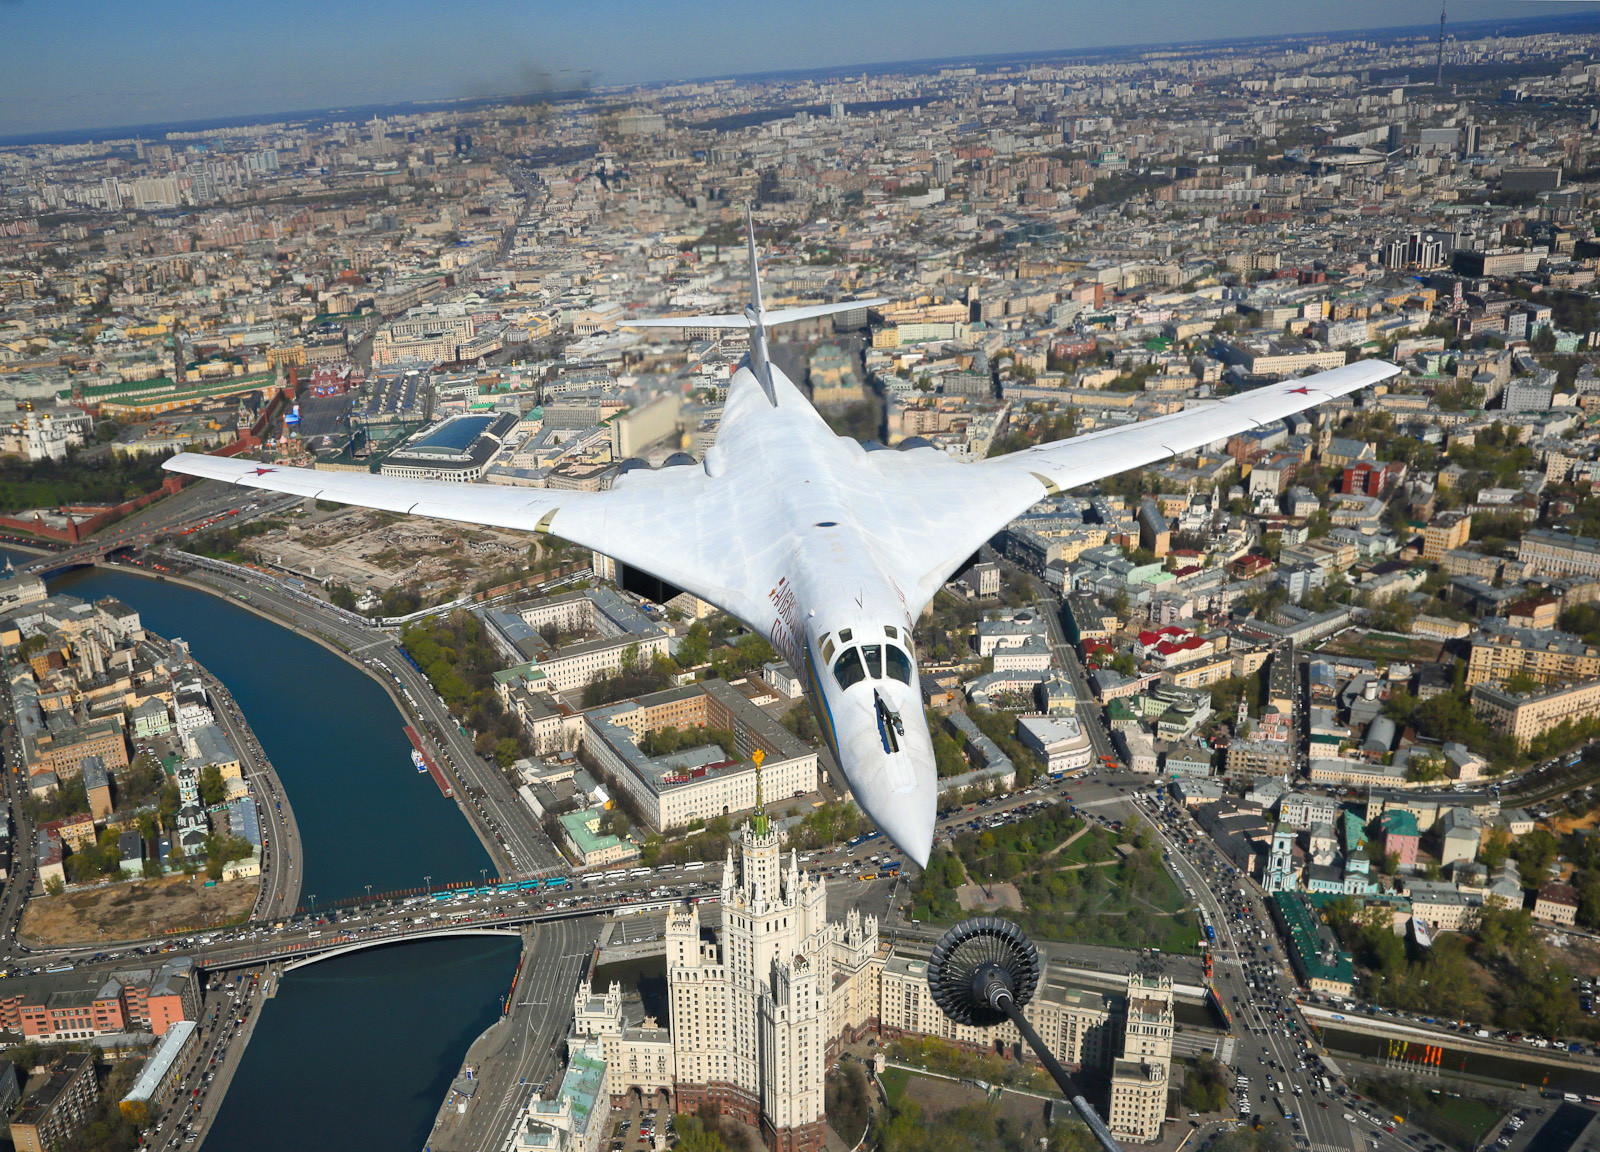 The Tupolev Tu-160 strategic bomber in the sky above Moscow.